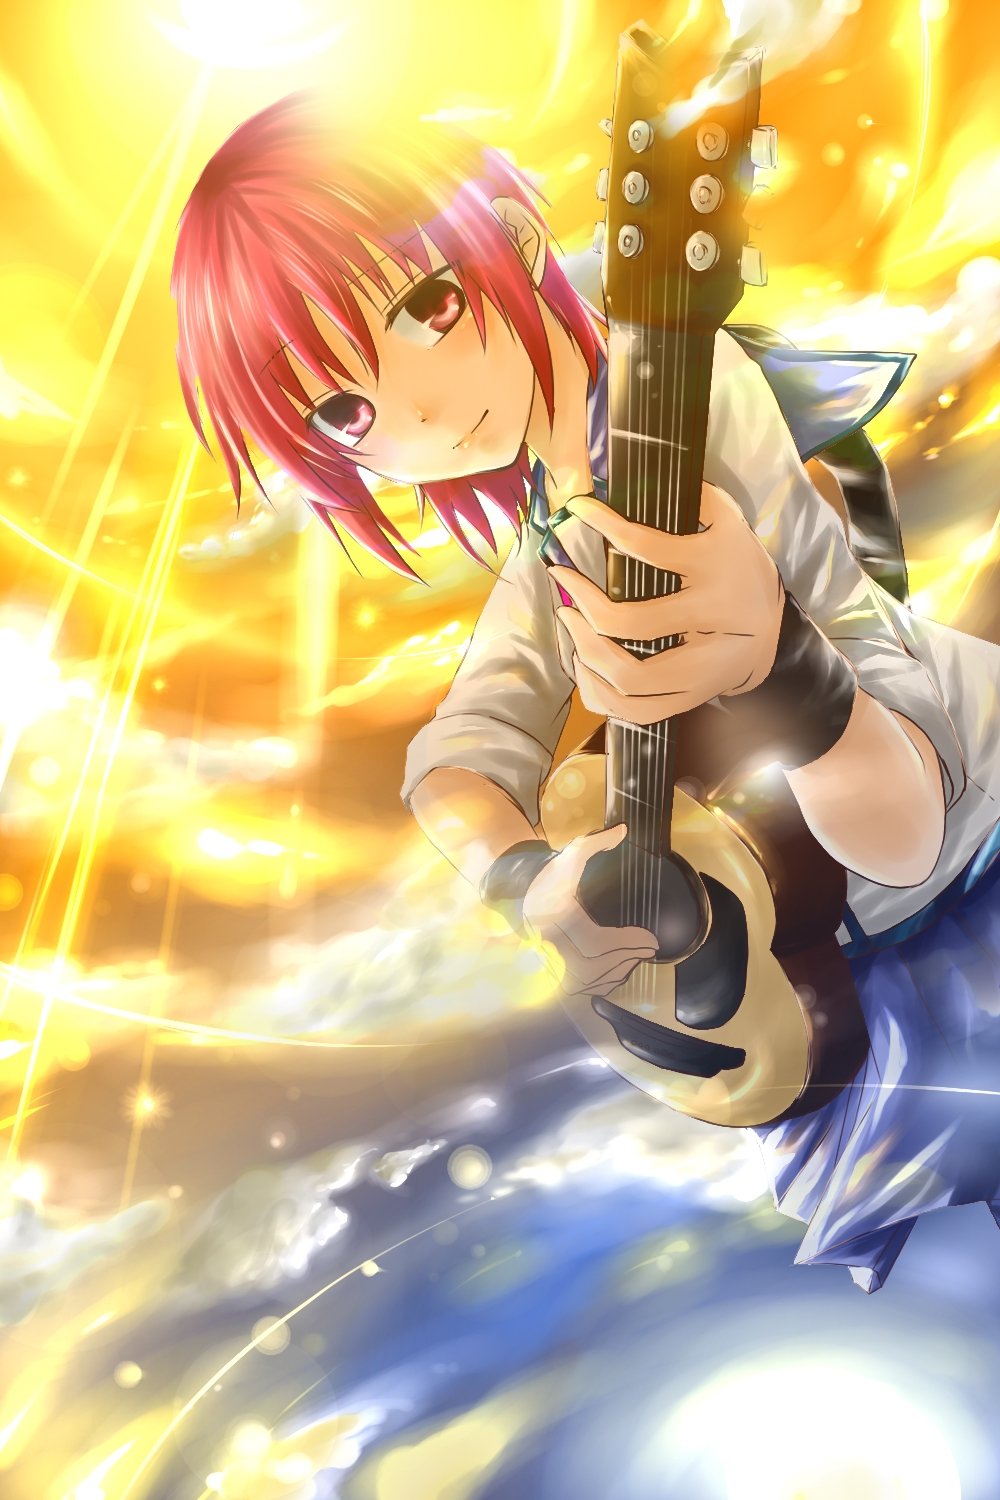 Smile, Iwasawa, Female, Guitar, Musical Instrument, Solo, Pink Hair, Short Hair, Pink Eyes, Sunbeam, Angel Beats!